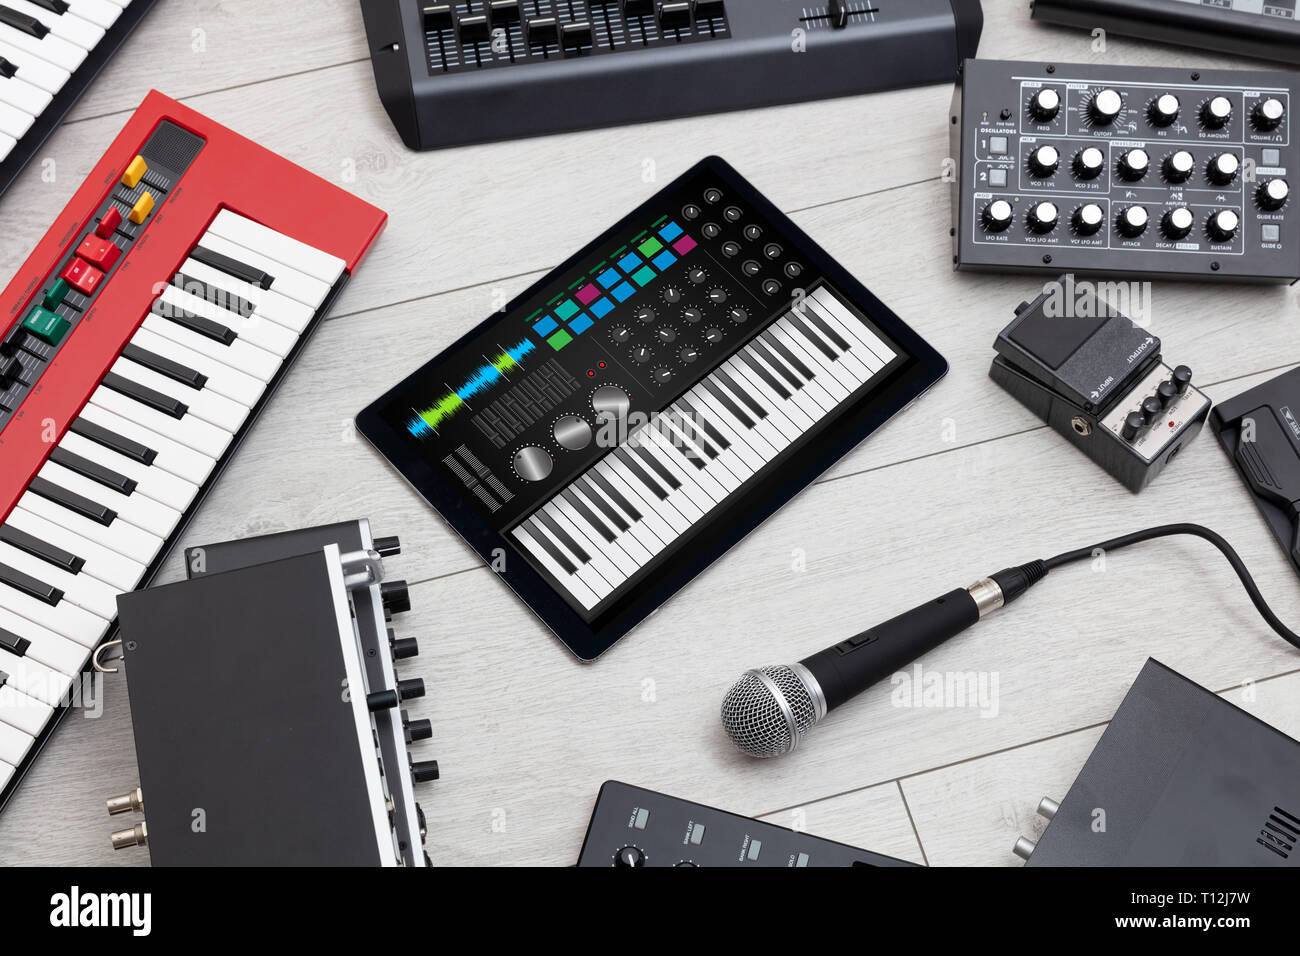 Piano synthesizer app on tablet and musical instrument concept  - Stock Image